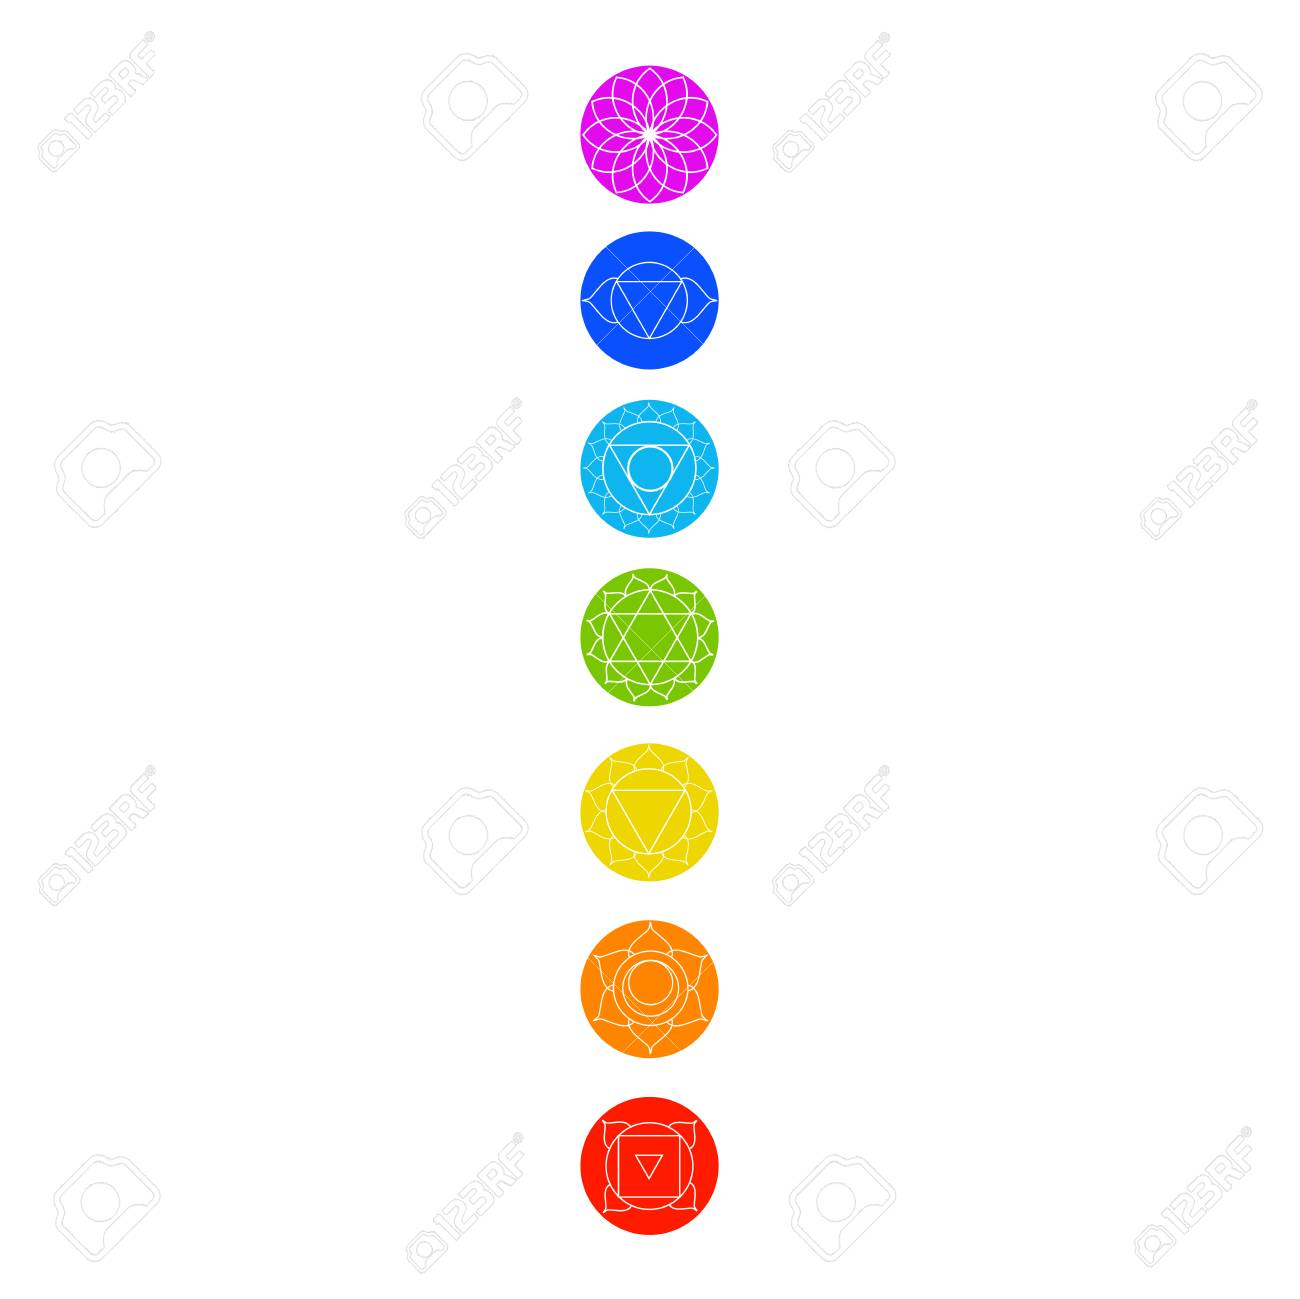 Chakra icons with respective colors, names and their meanings - 90234372